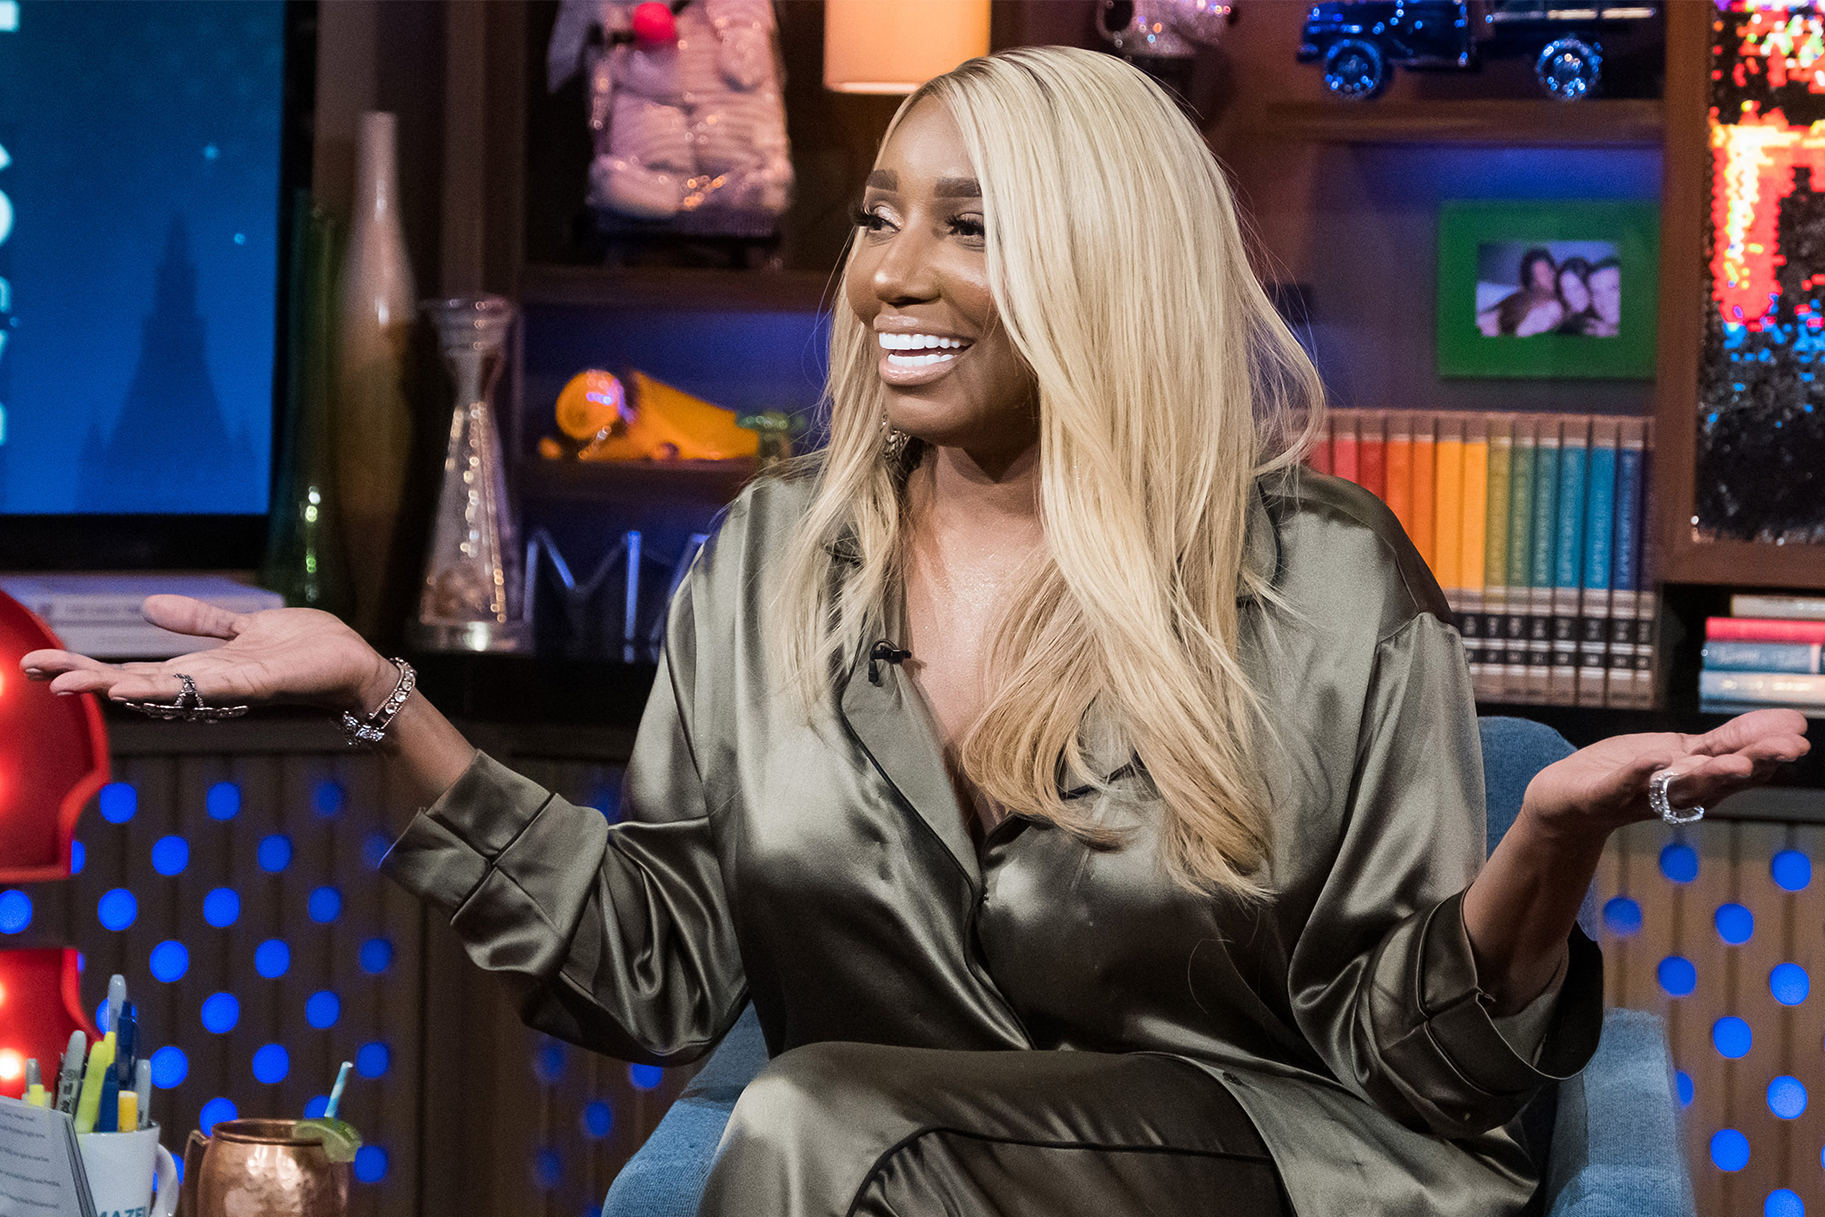 NeNe Leakes Revealed A Surprise For Her Fans - Check Out Her New Show